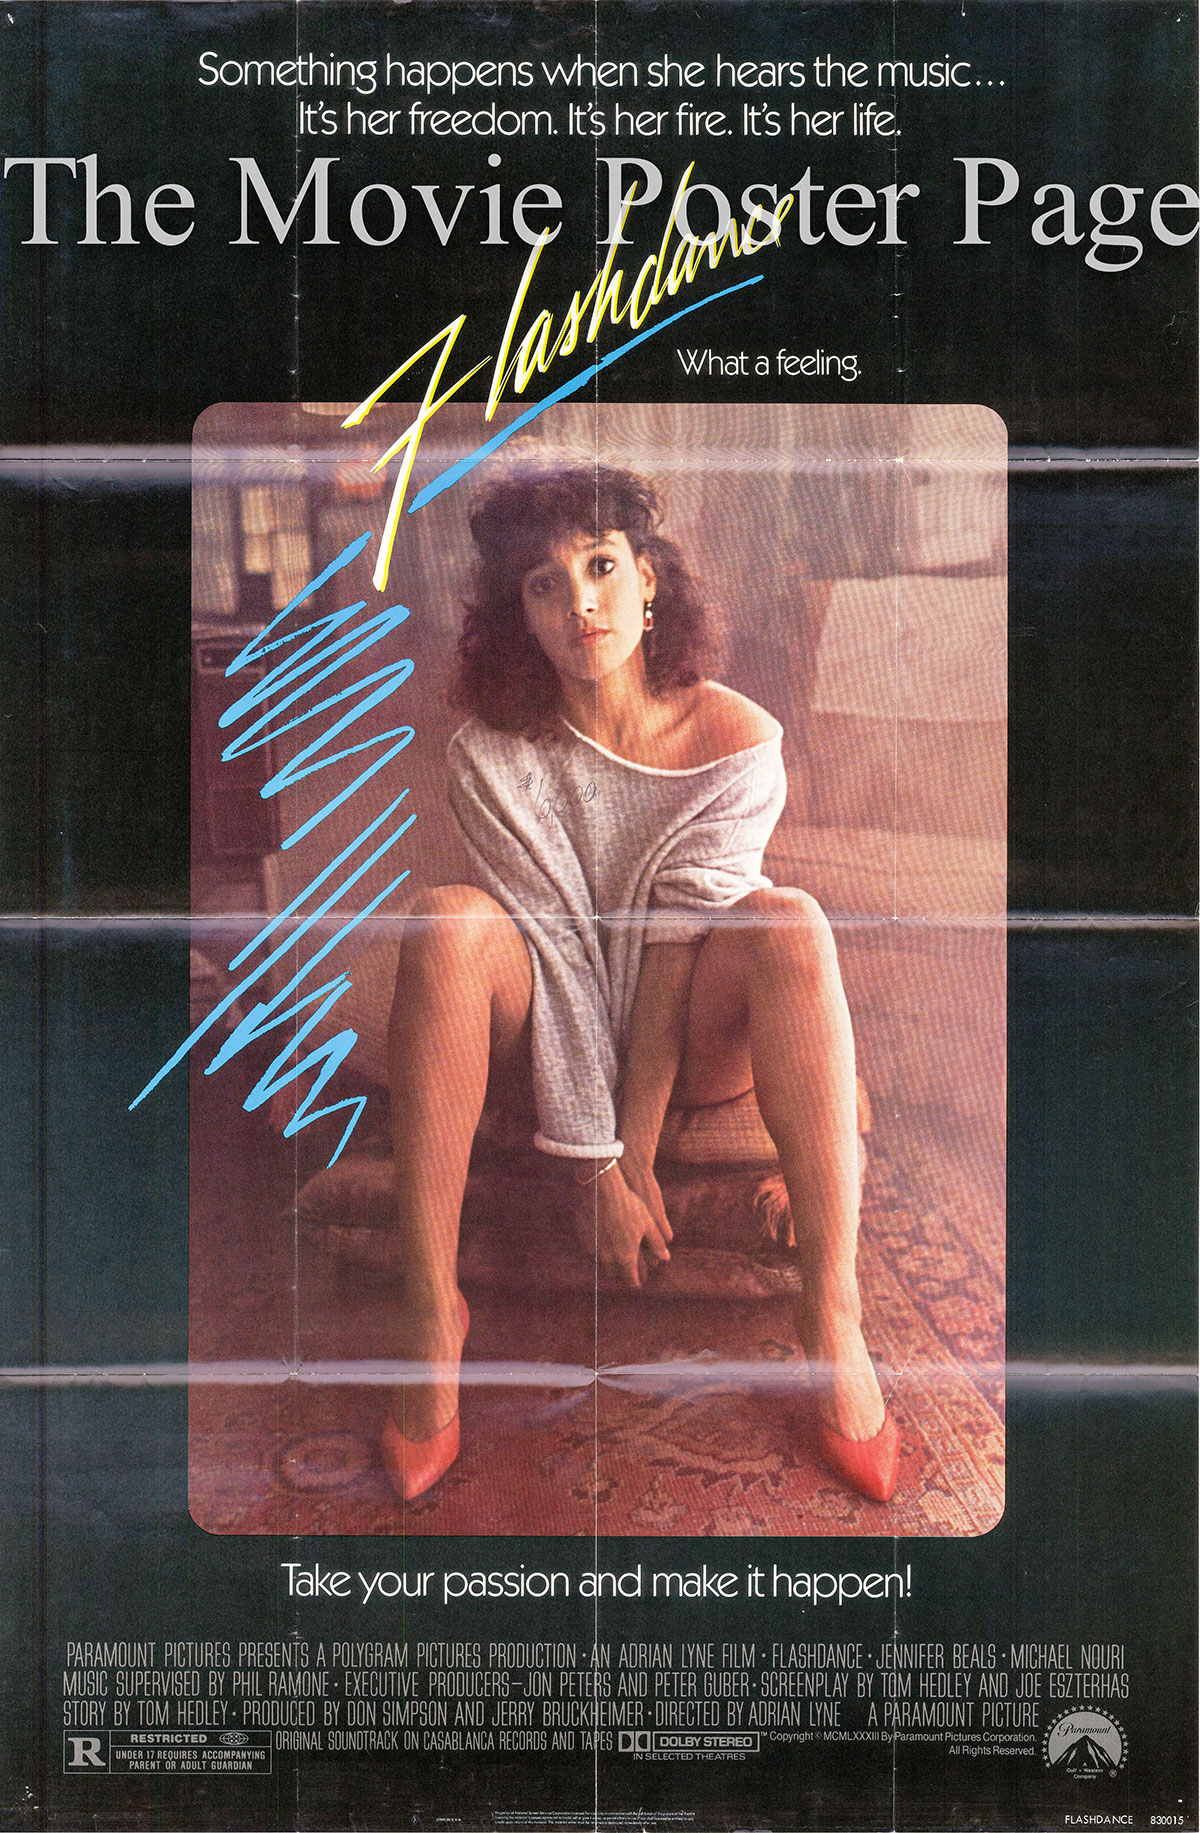 Pictured is a US one-sheet promotional poster for the 1983 Adrian Lyne film Flashdance starring Jennifer Beals.